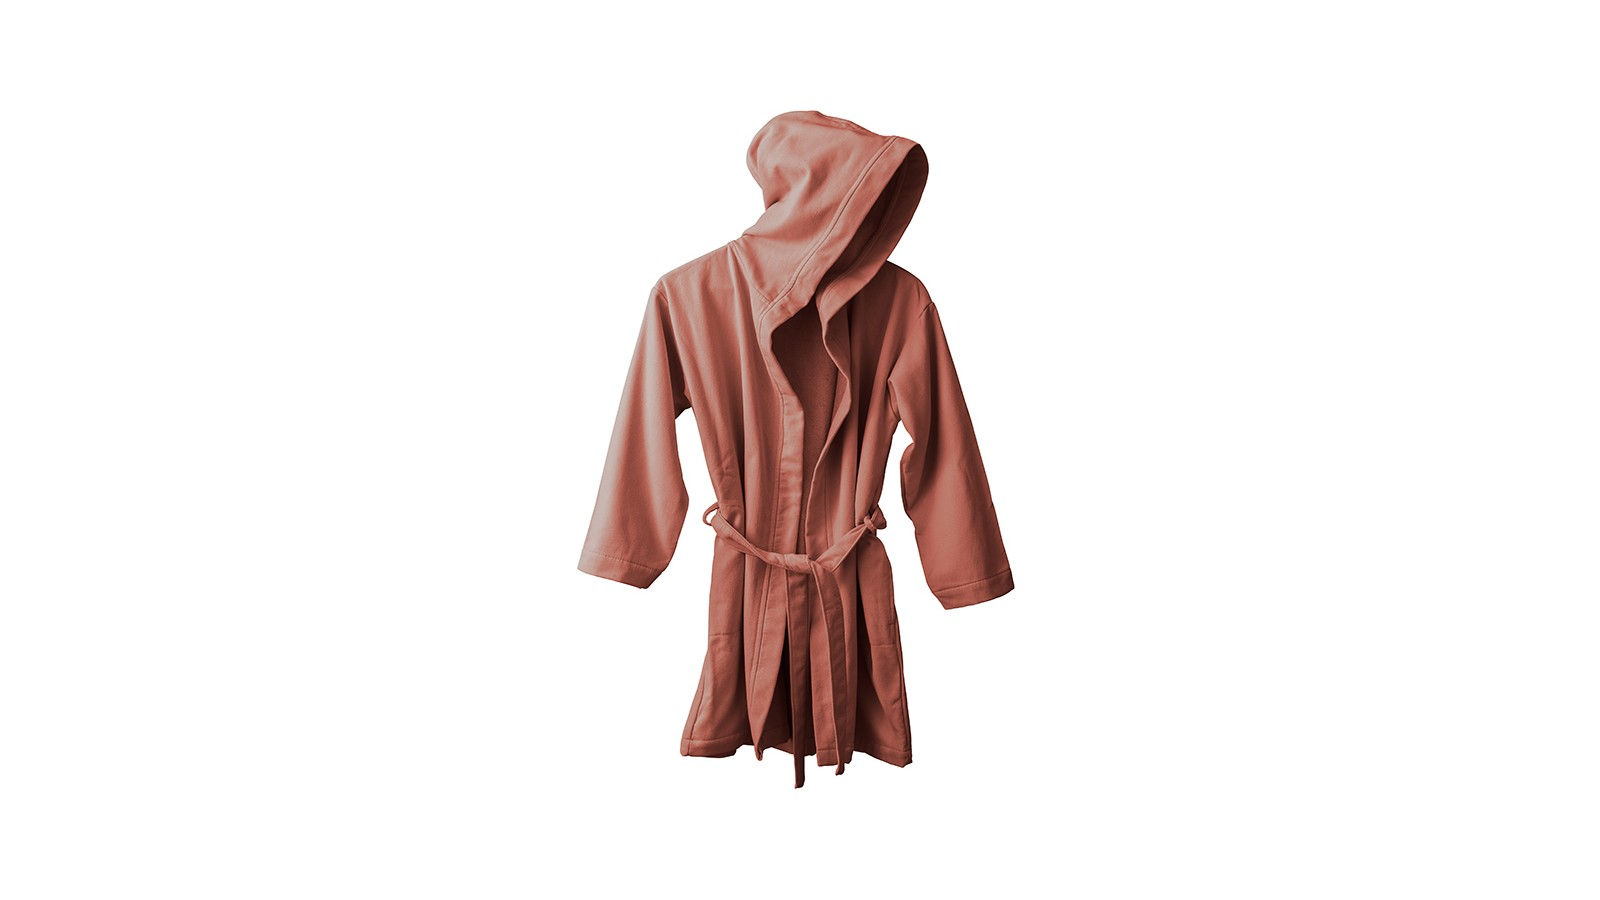 Peignoir capuche en éponge coton bio Orange Terracotta